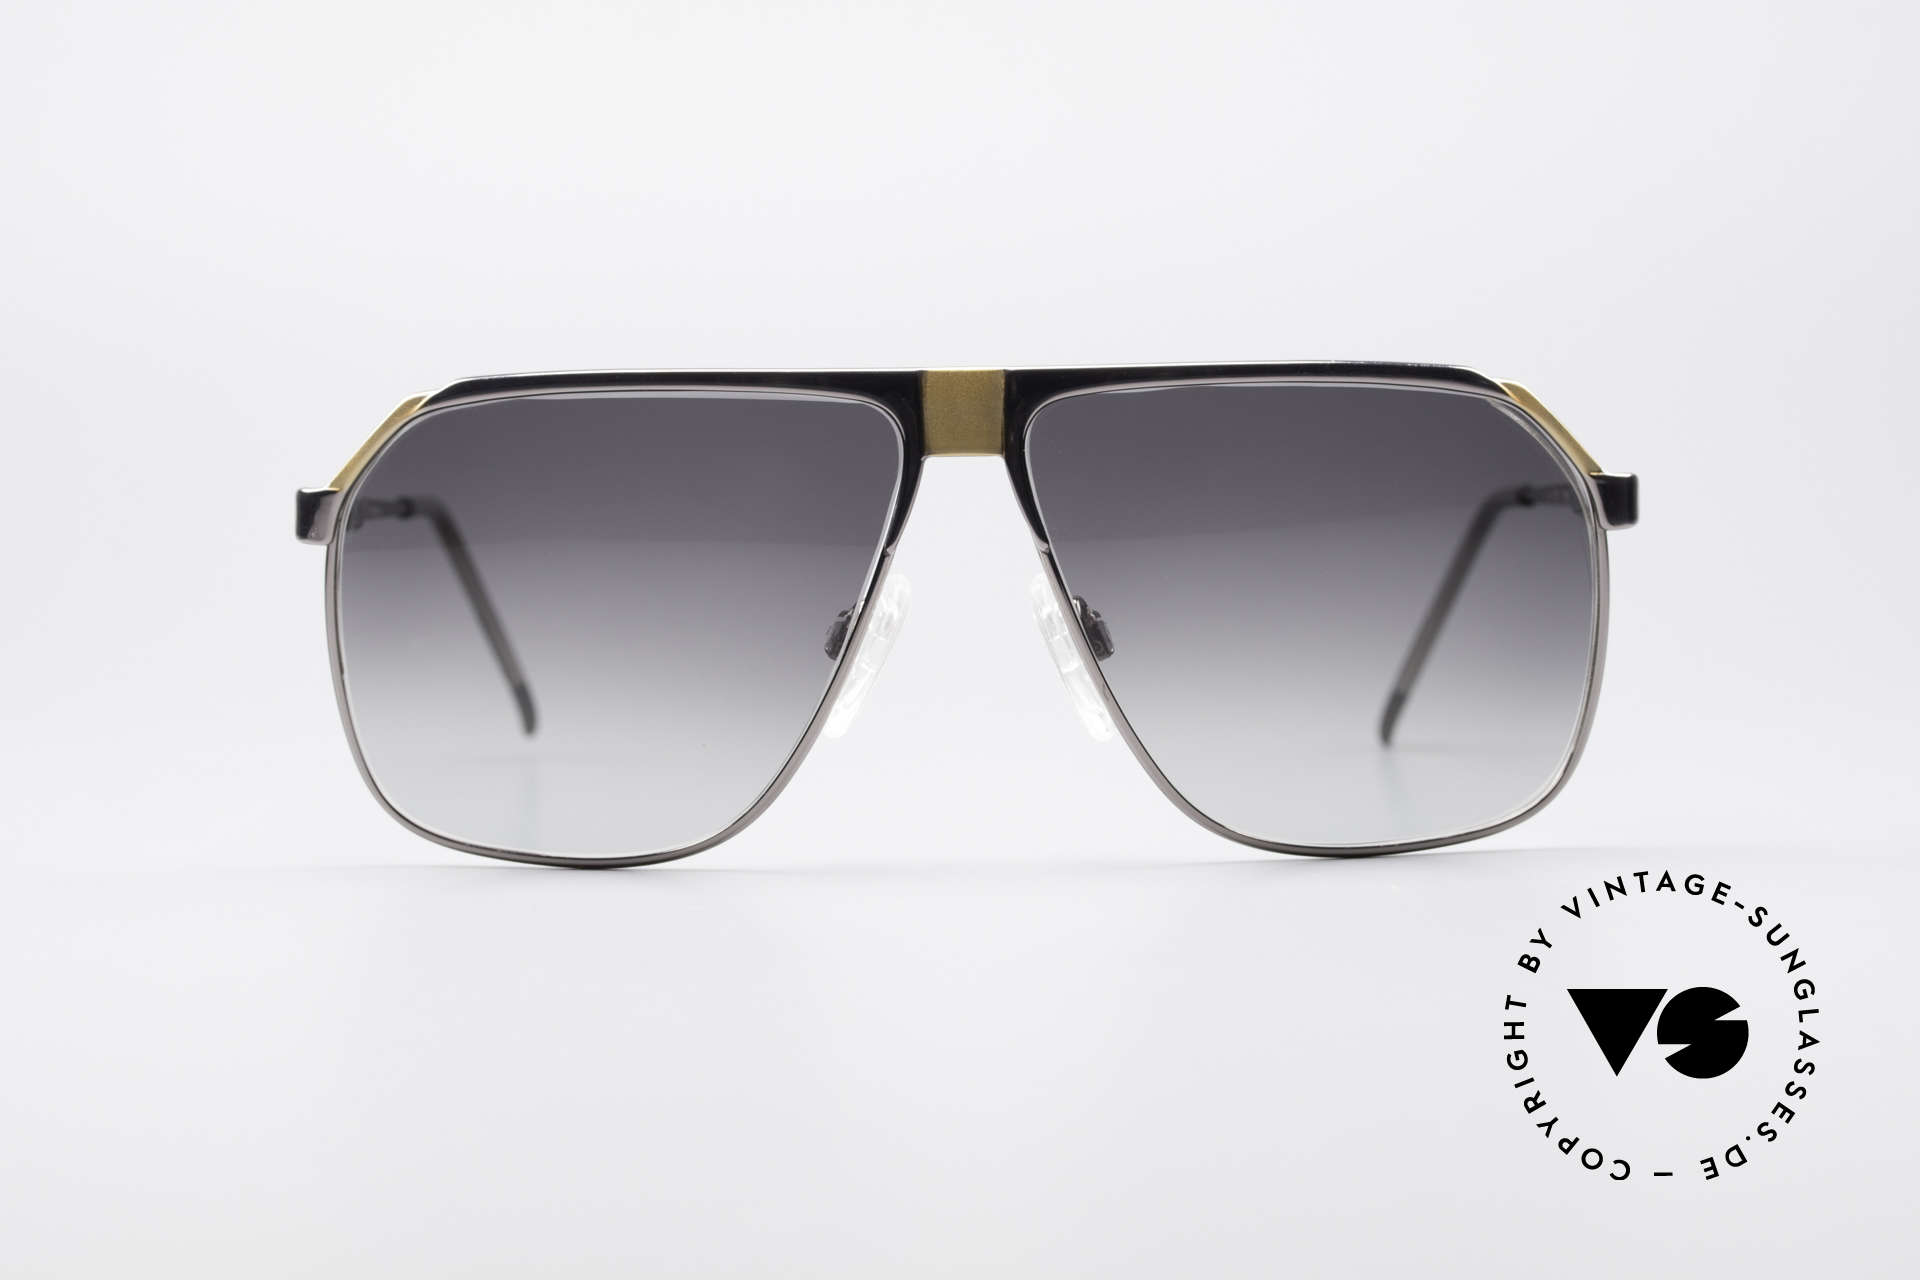 Gucci 1200 80's Luxury Sunglasses, really rare collector's piece from the late 1980s, Made for Men